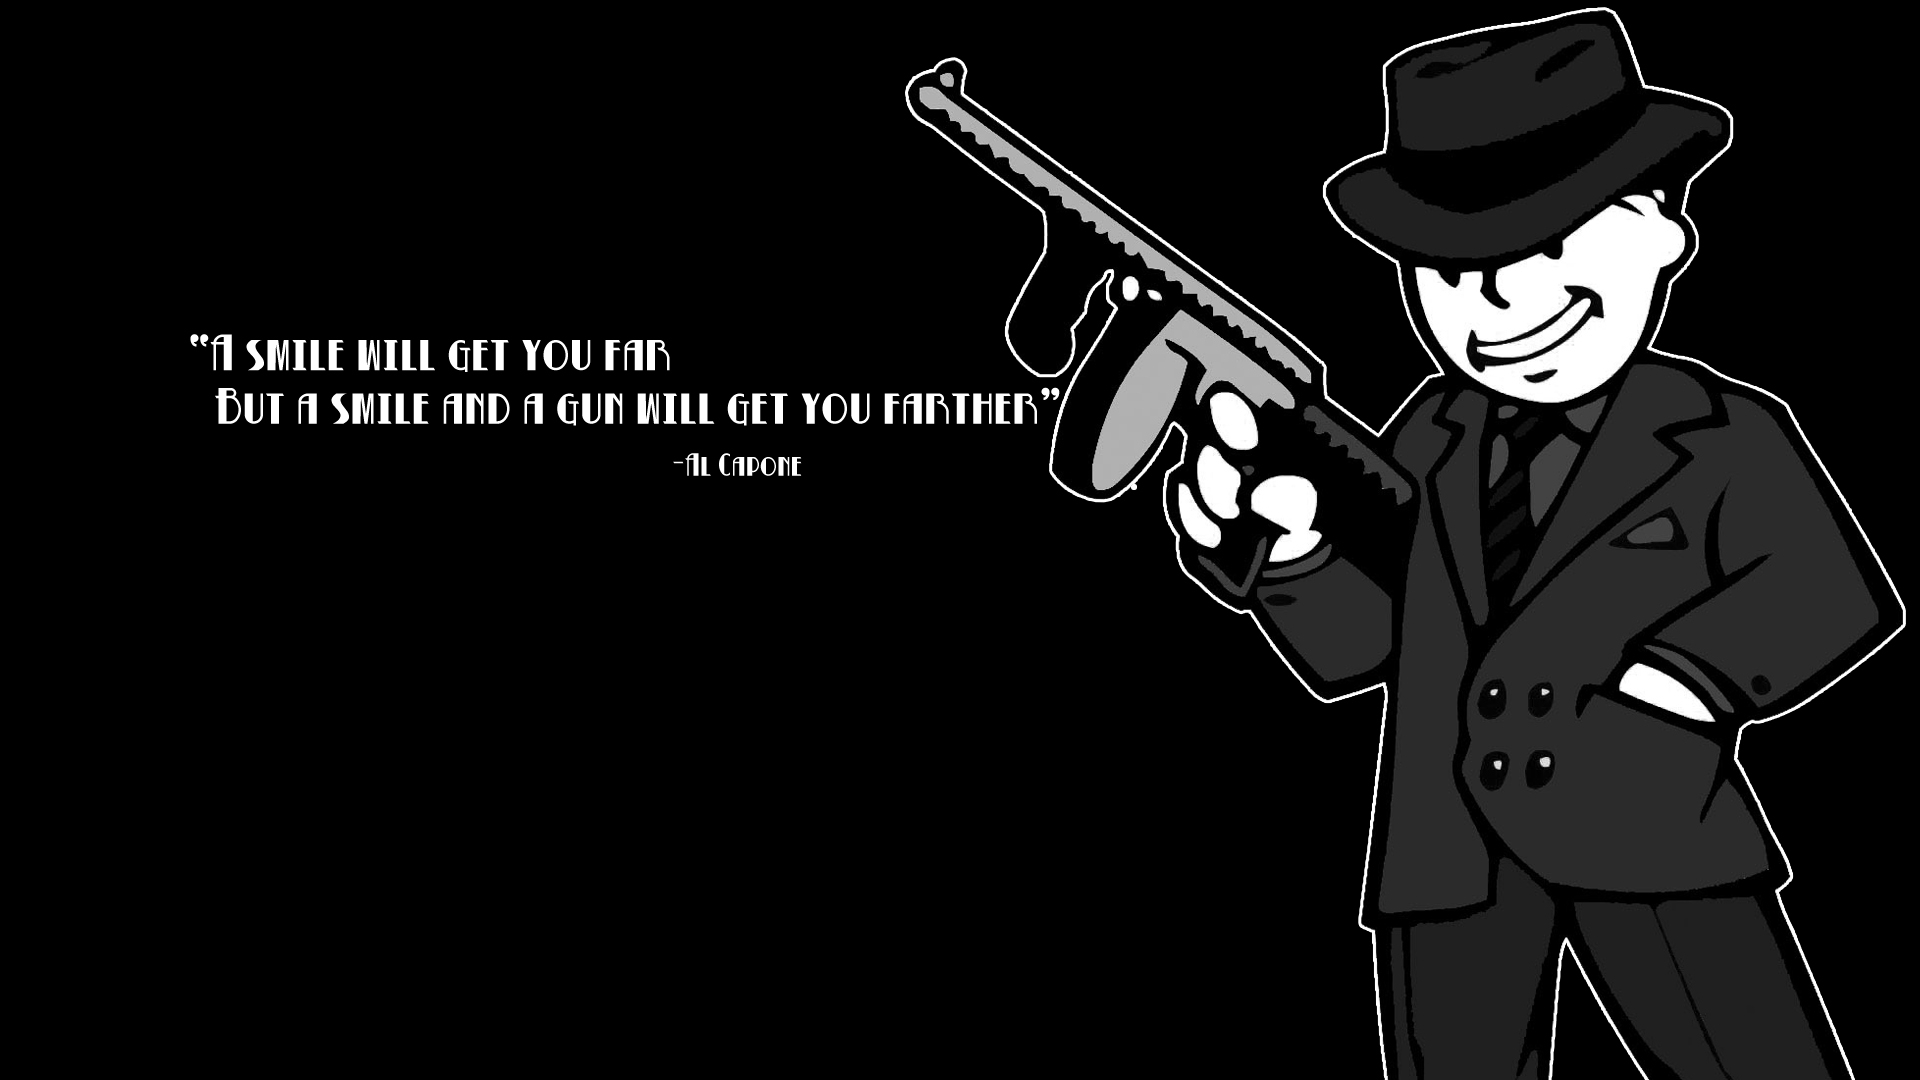 Free Download Gaming Quotes Quotesgram 1920x1080 For Your Desktop Mobile Tablet Explore 49 Quotes Hd Wallpaper 1920x1080 Windows 10 Hd Wallpaper 1920x1080 Hd Wallpapers Windows 7 Wallpaper Hd 1920x1080